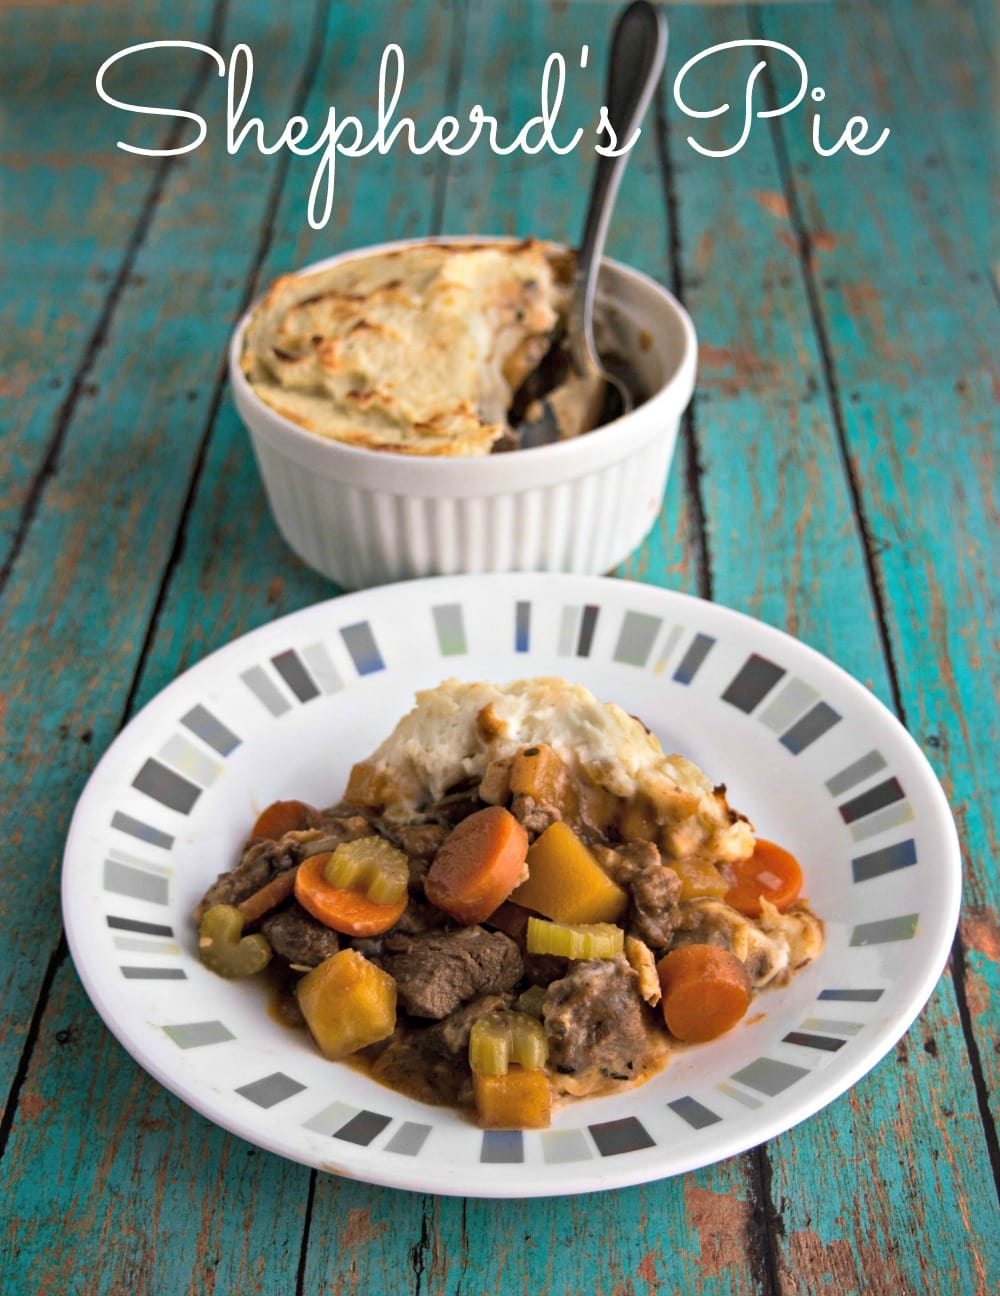 Shepherd's Pie with Lamb - a tasty comfort food casserole featuring chunks of lamb and vegetables topped off with creamy mashed potatoes.